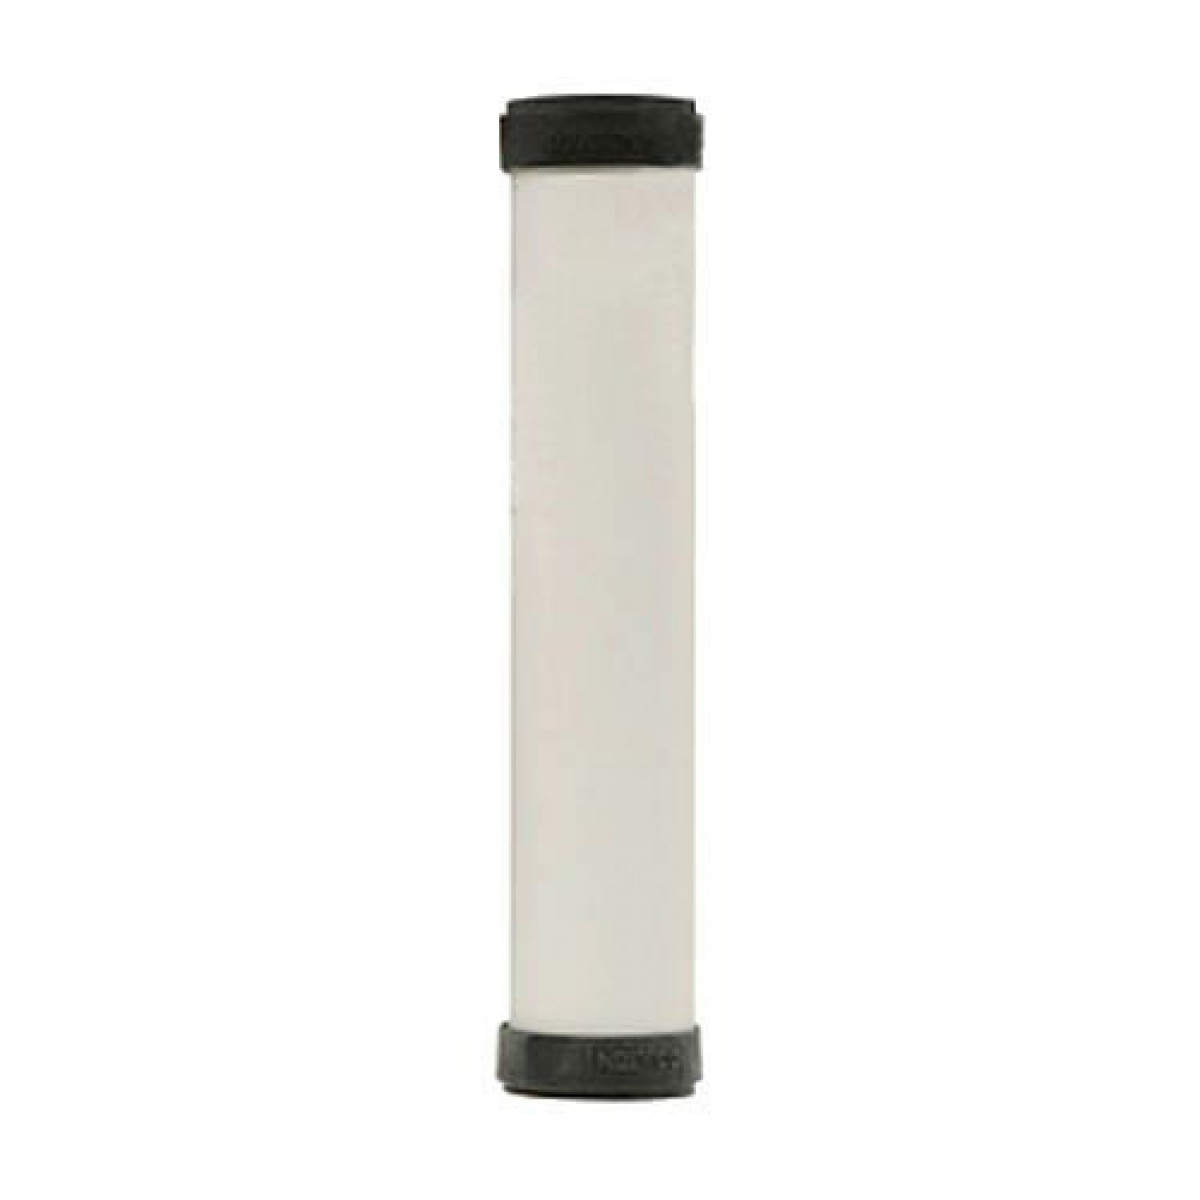 Doulton W9223002 Ultracarb Obe 10 Inch Ceramic Water Filter